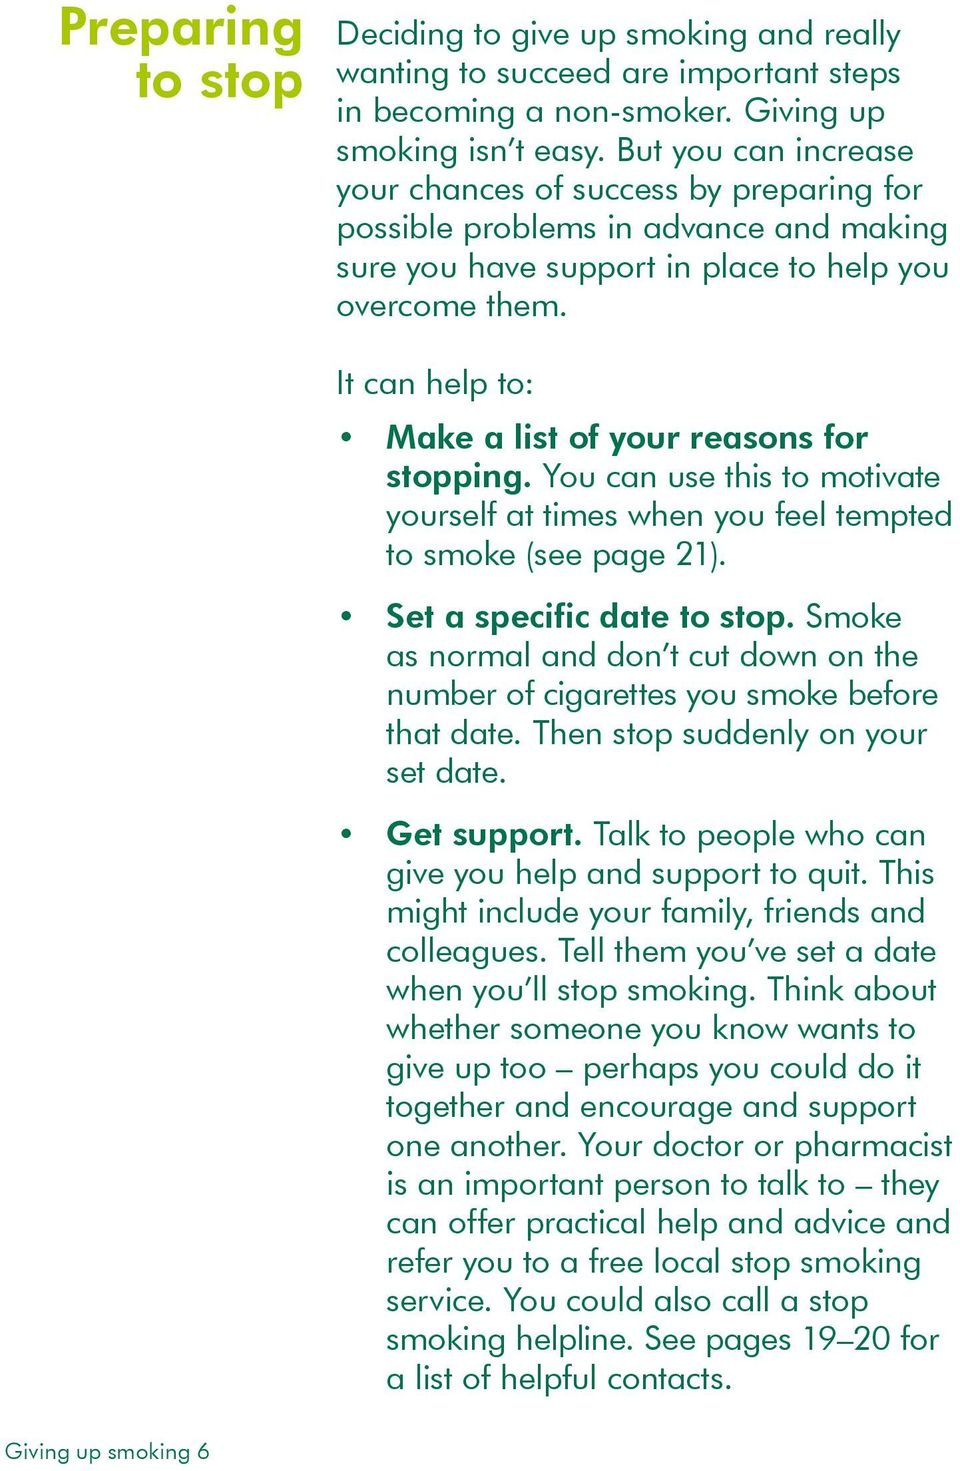 It can help to: Make a list of your reasons for stopping. You can use this to motivate yourself at times when you feel tempted to smoke (see page 21). Set a specific date to stop.